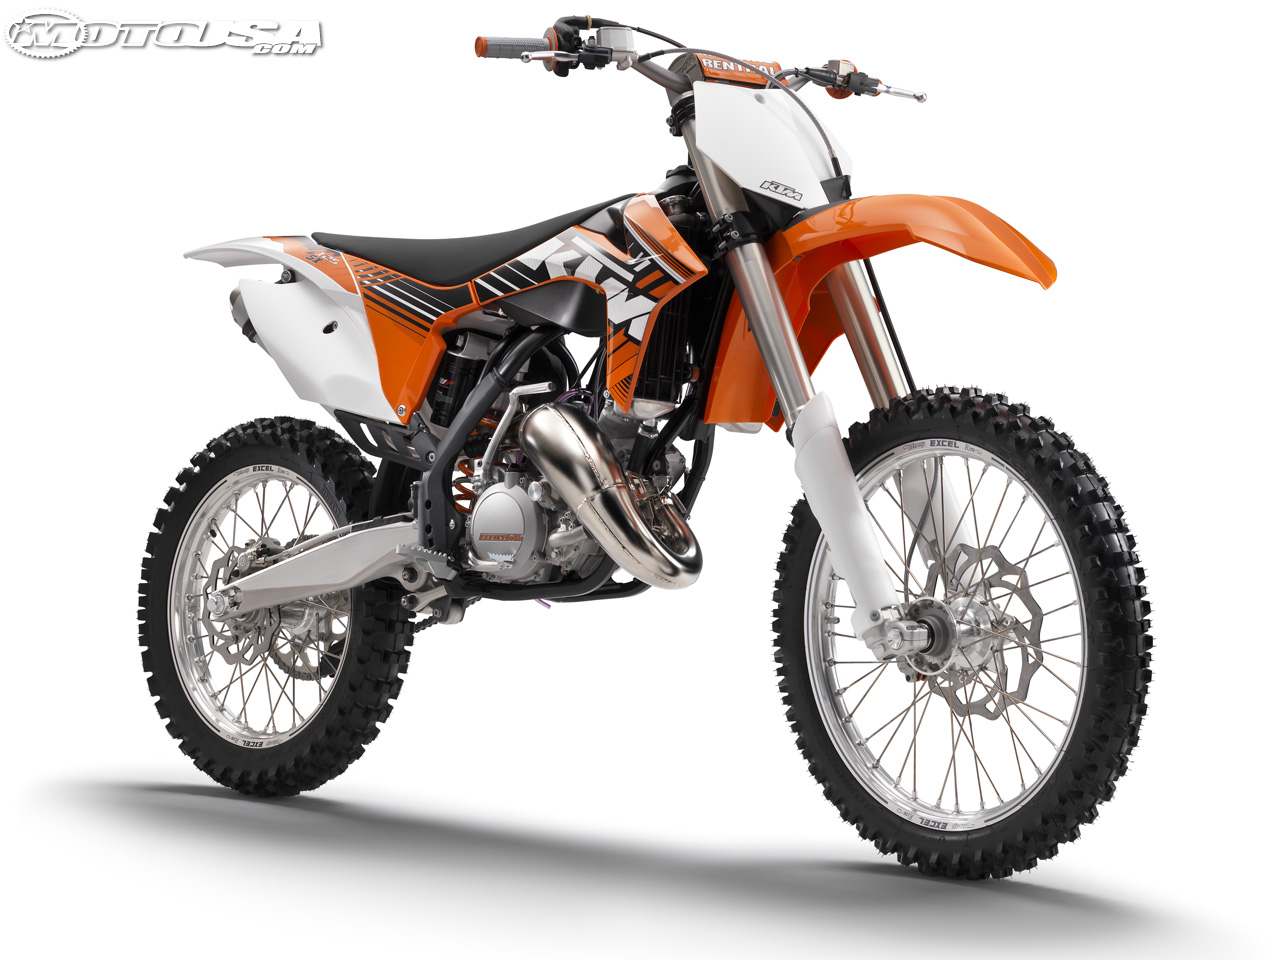 2004 ktm 125 sx pics specs and information. Black Bedroom Furniture Sets. Home Design Ideas